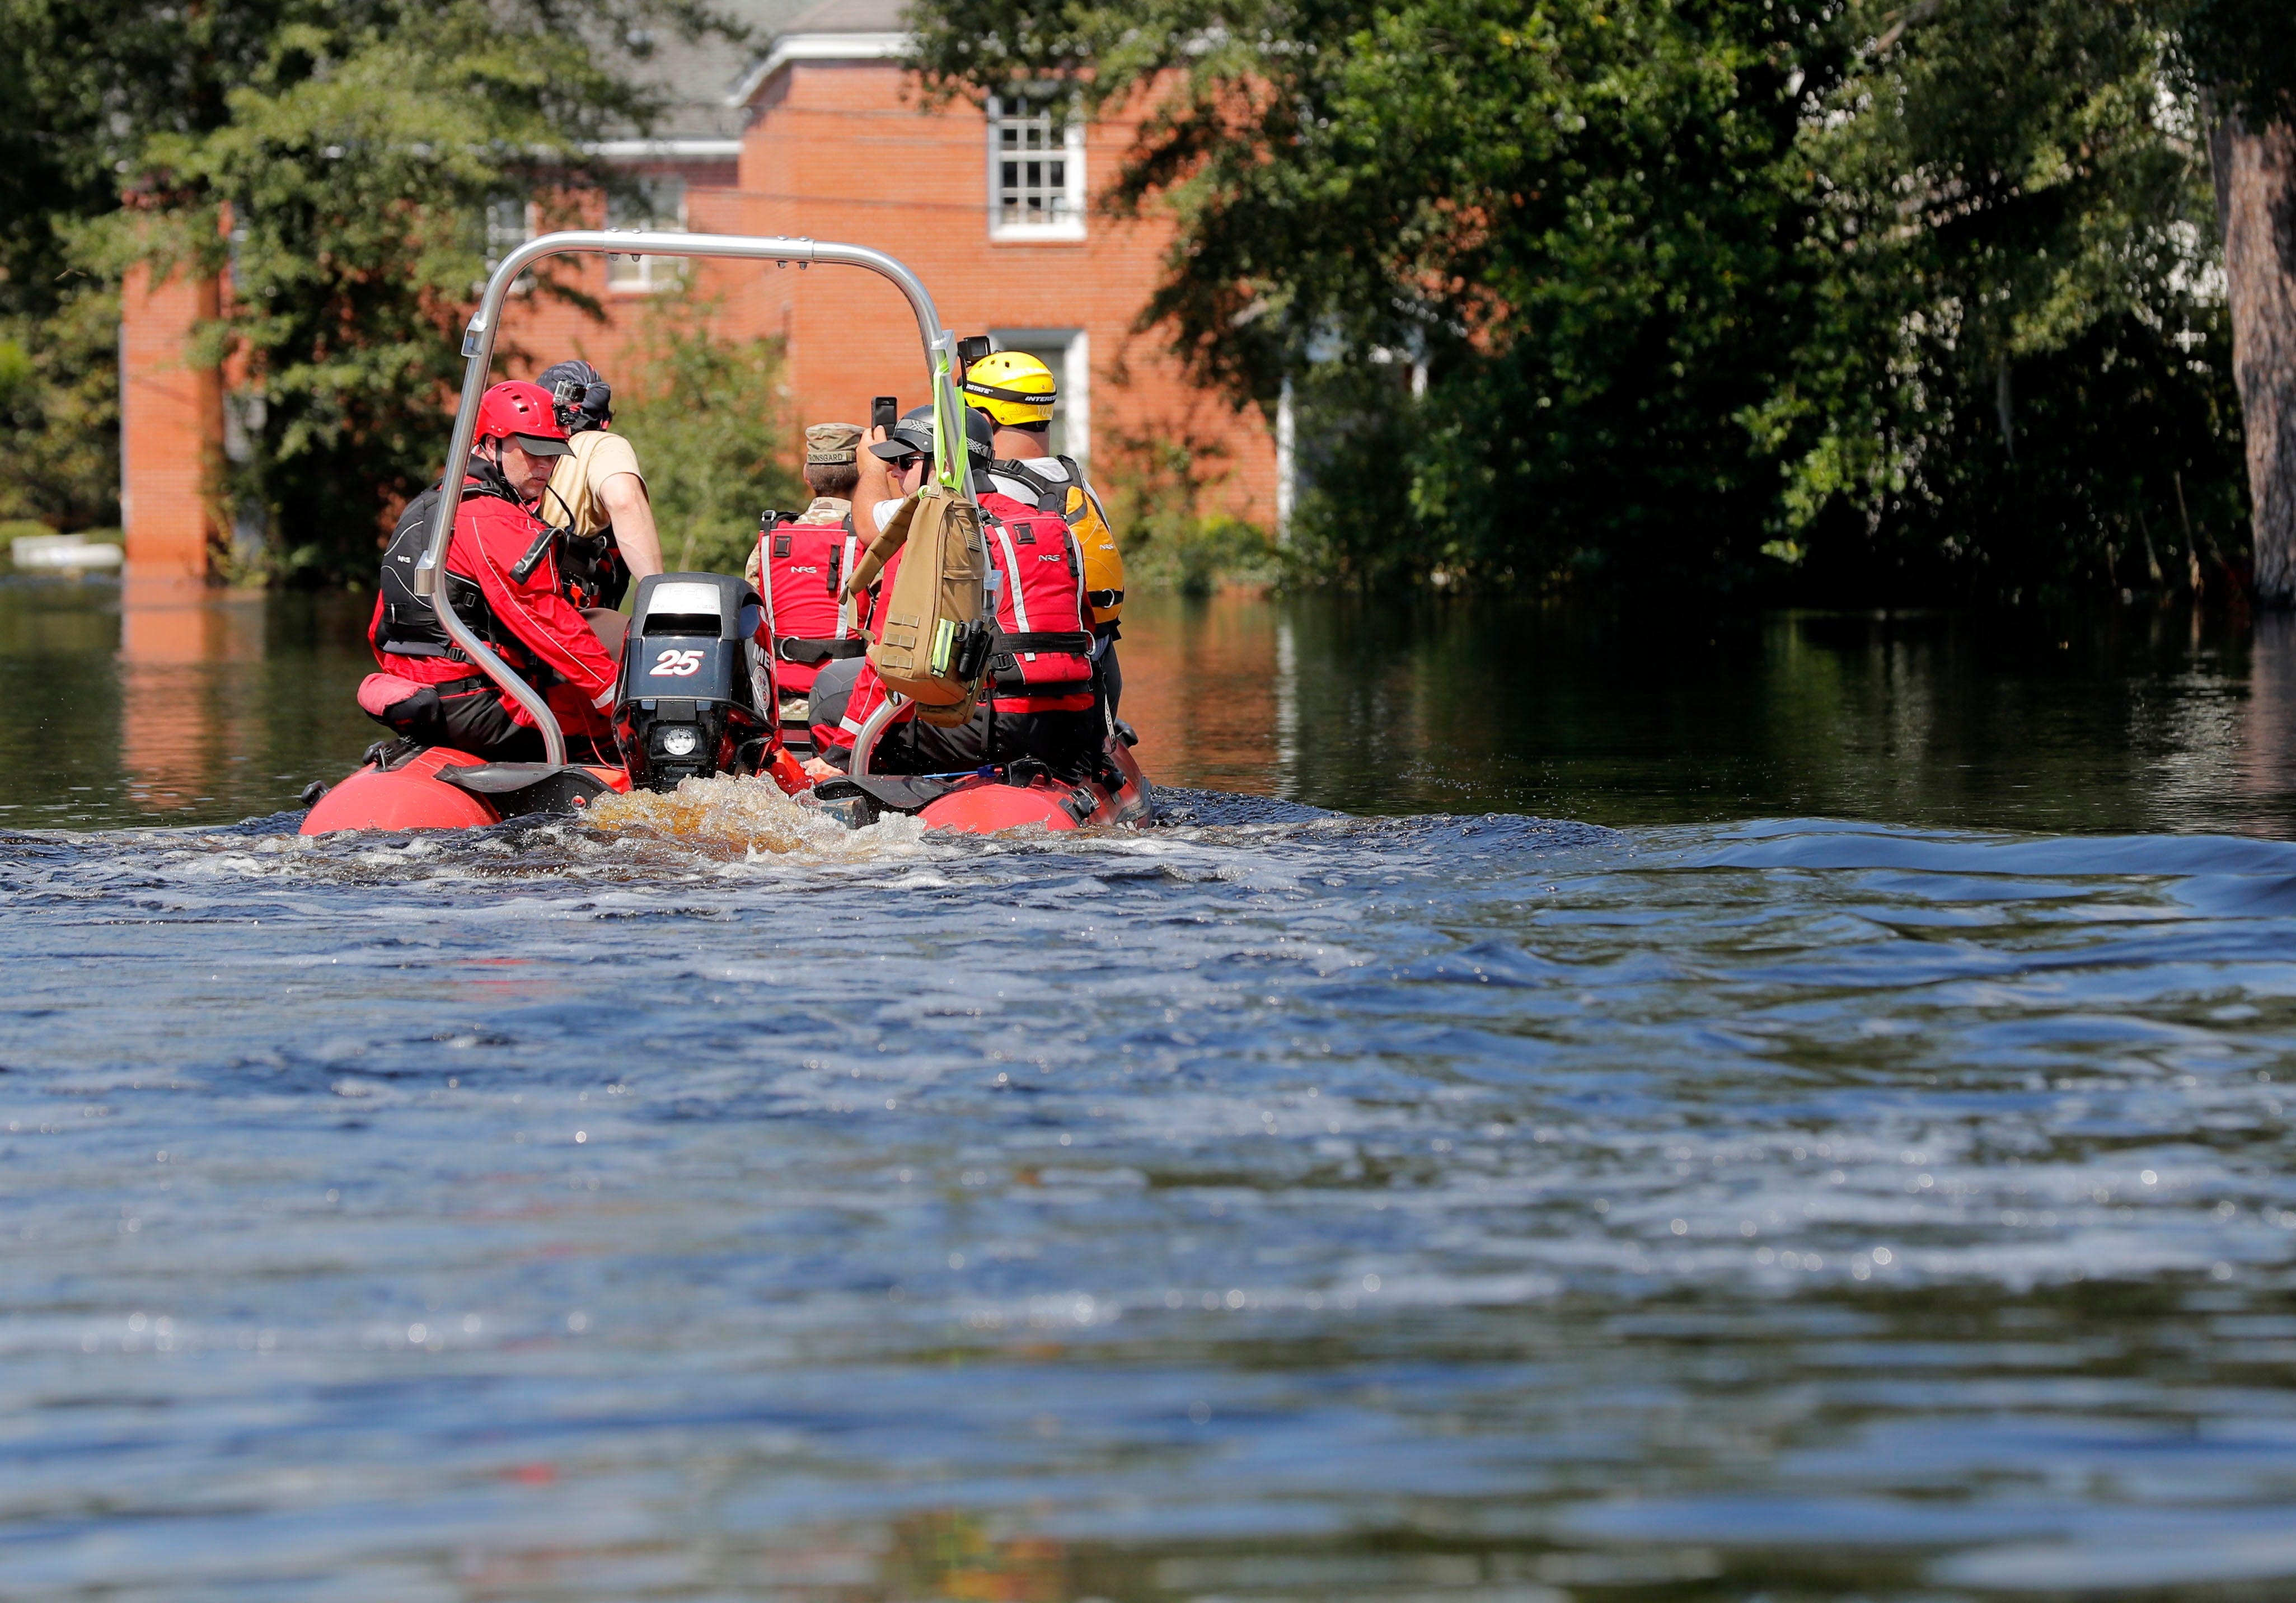 A swift recuse boat motors through floodwaters in the aftermath of Hurricane Florence in Nichols, S.C., Friday, Sept. 21, 2018. Virtually the entire town is flooded and inaccessible except by boat, just two years after it was flooded by Hurricane Matthew.